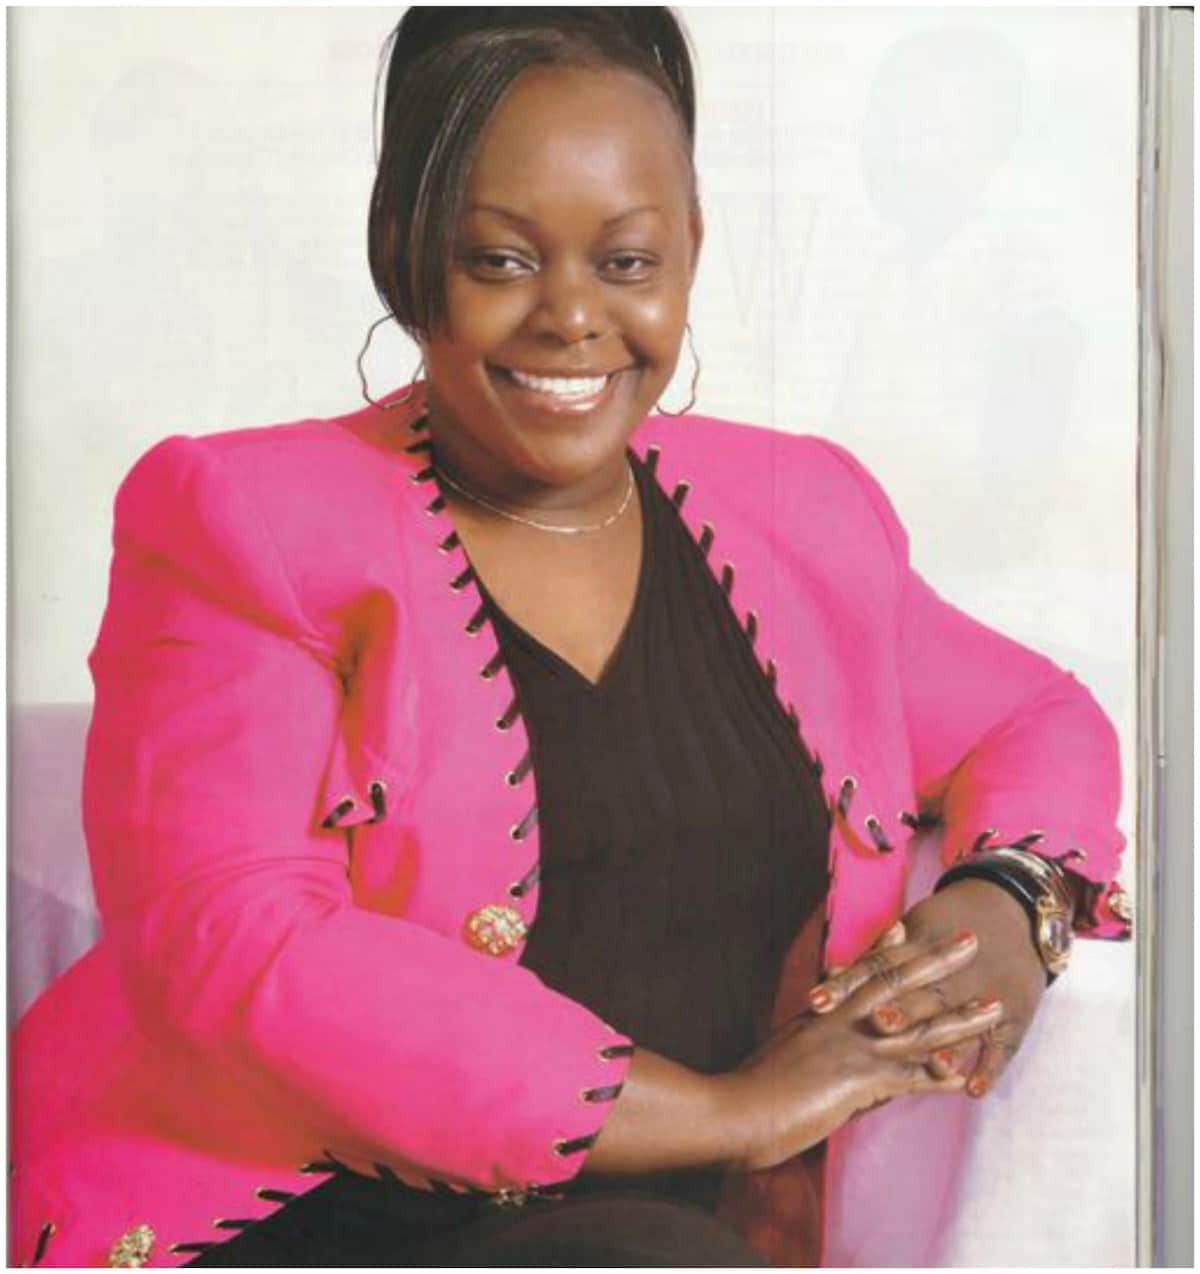 MPs will always demand more salaries because we are walking ATMs - Millie Odhiambo